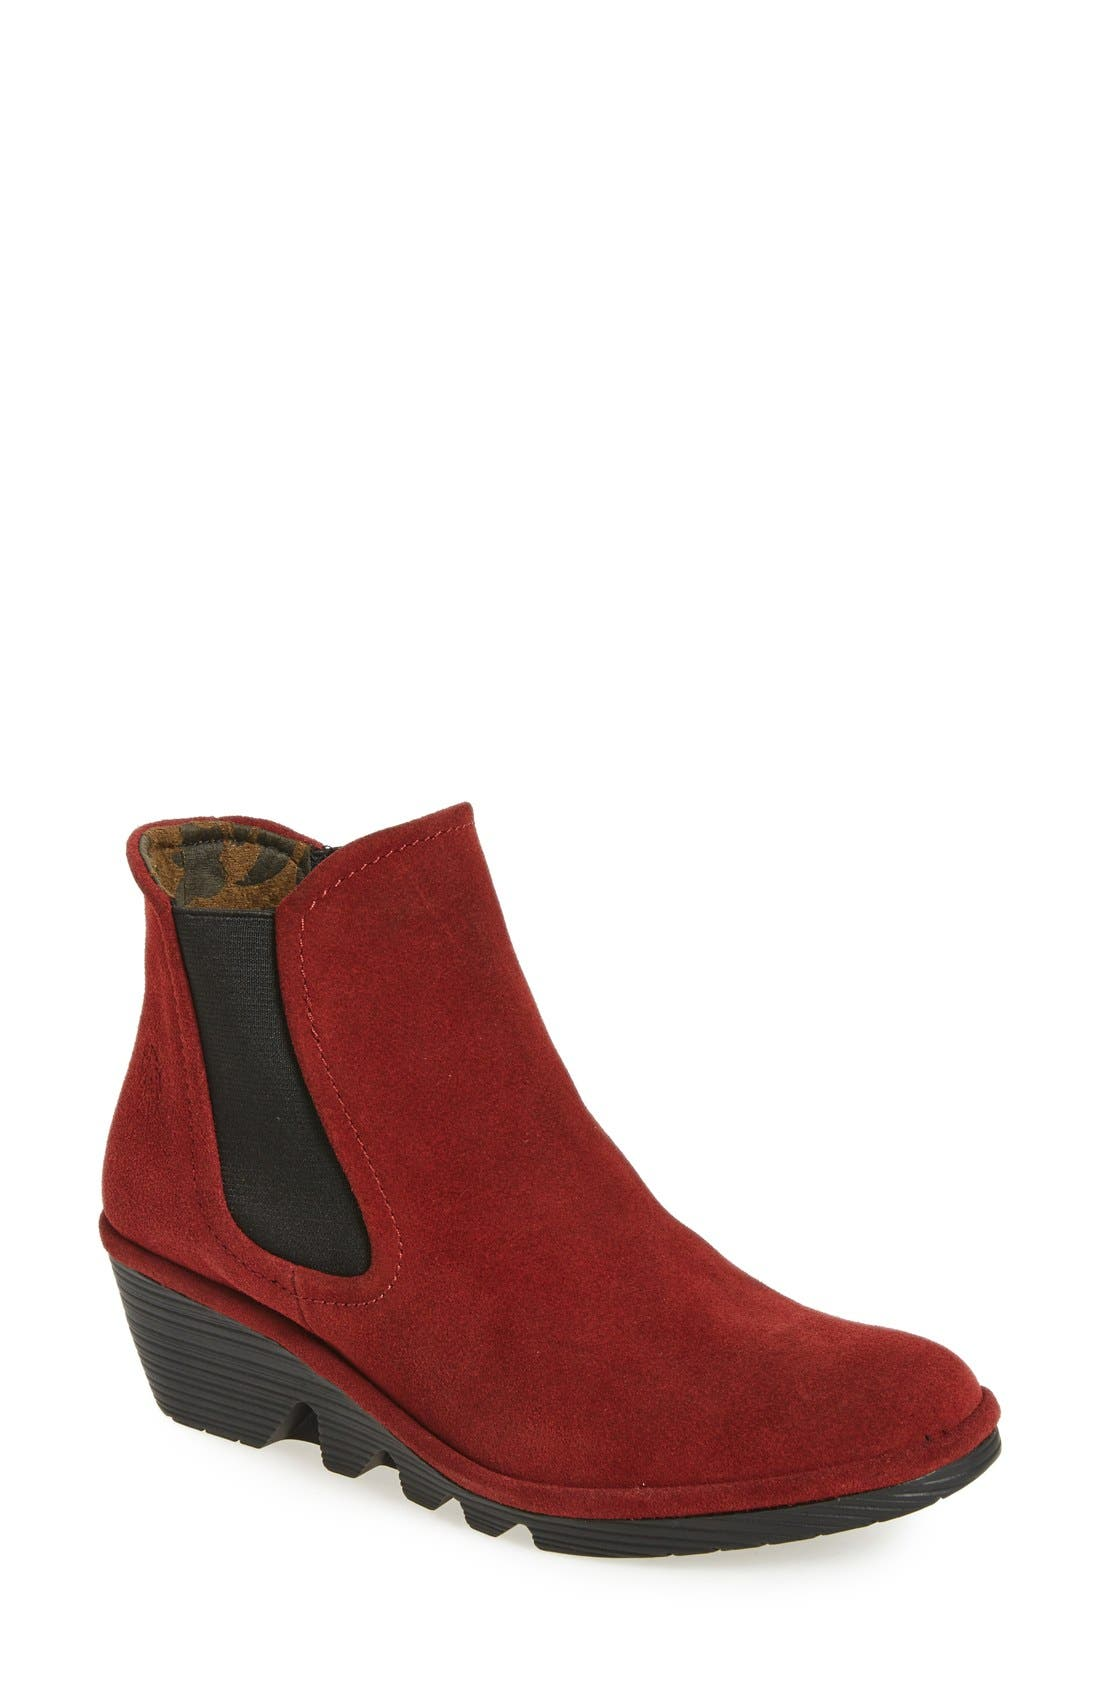 Alternate Image 1 Selected - Fly London 'Phil' Chelsea Boot (Women)